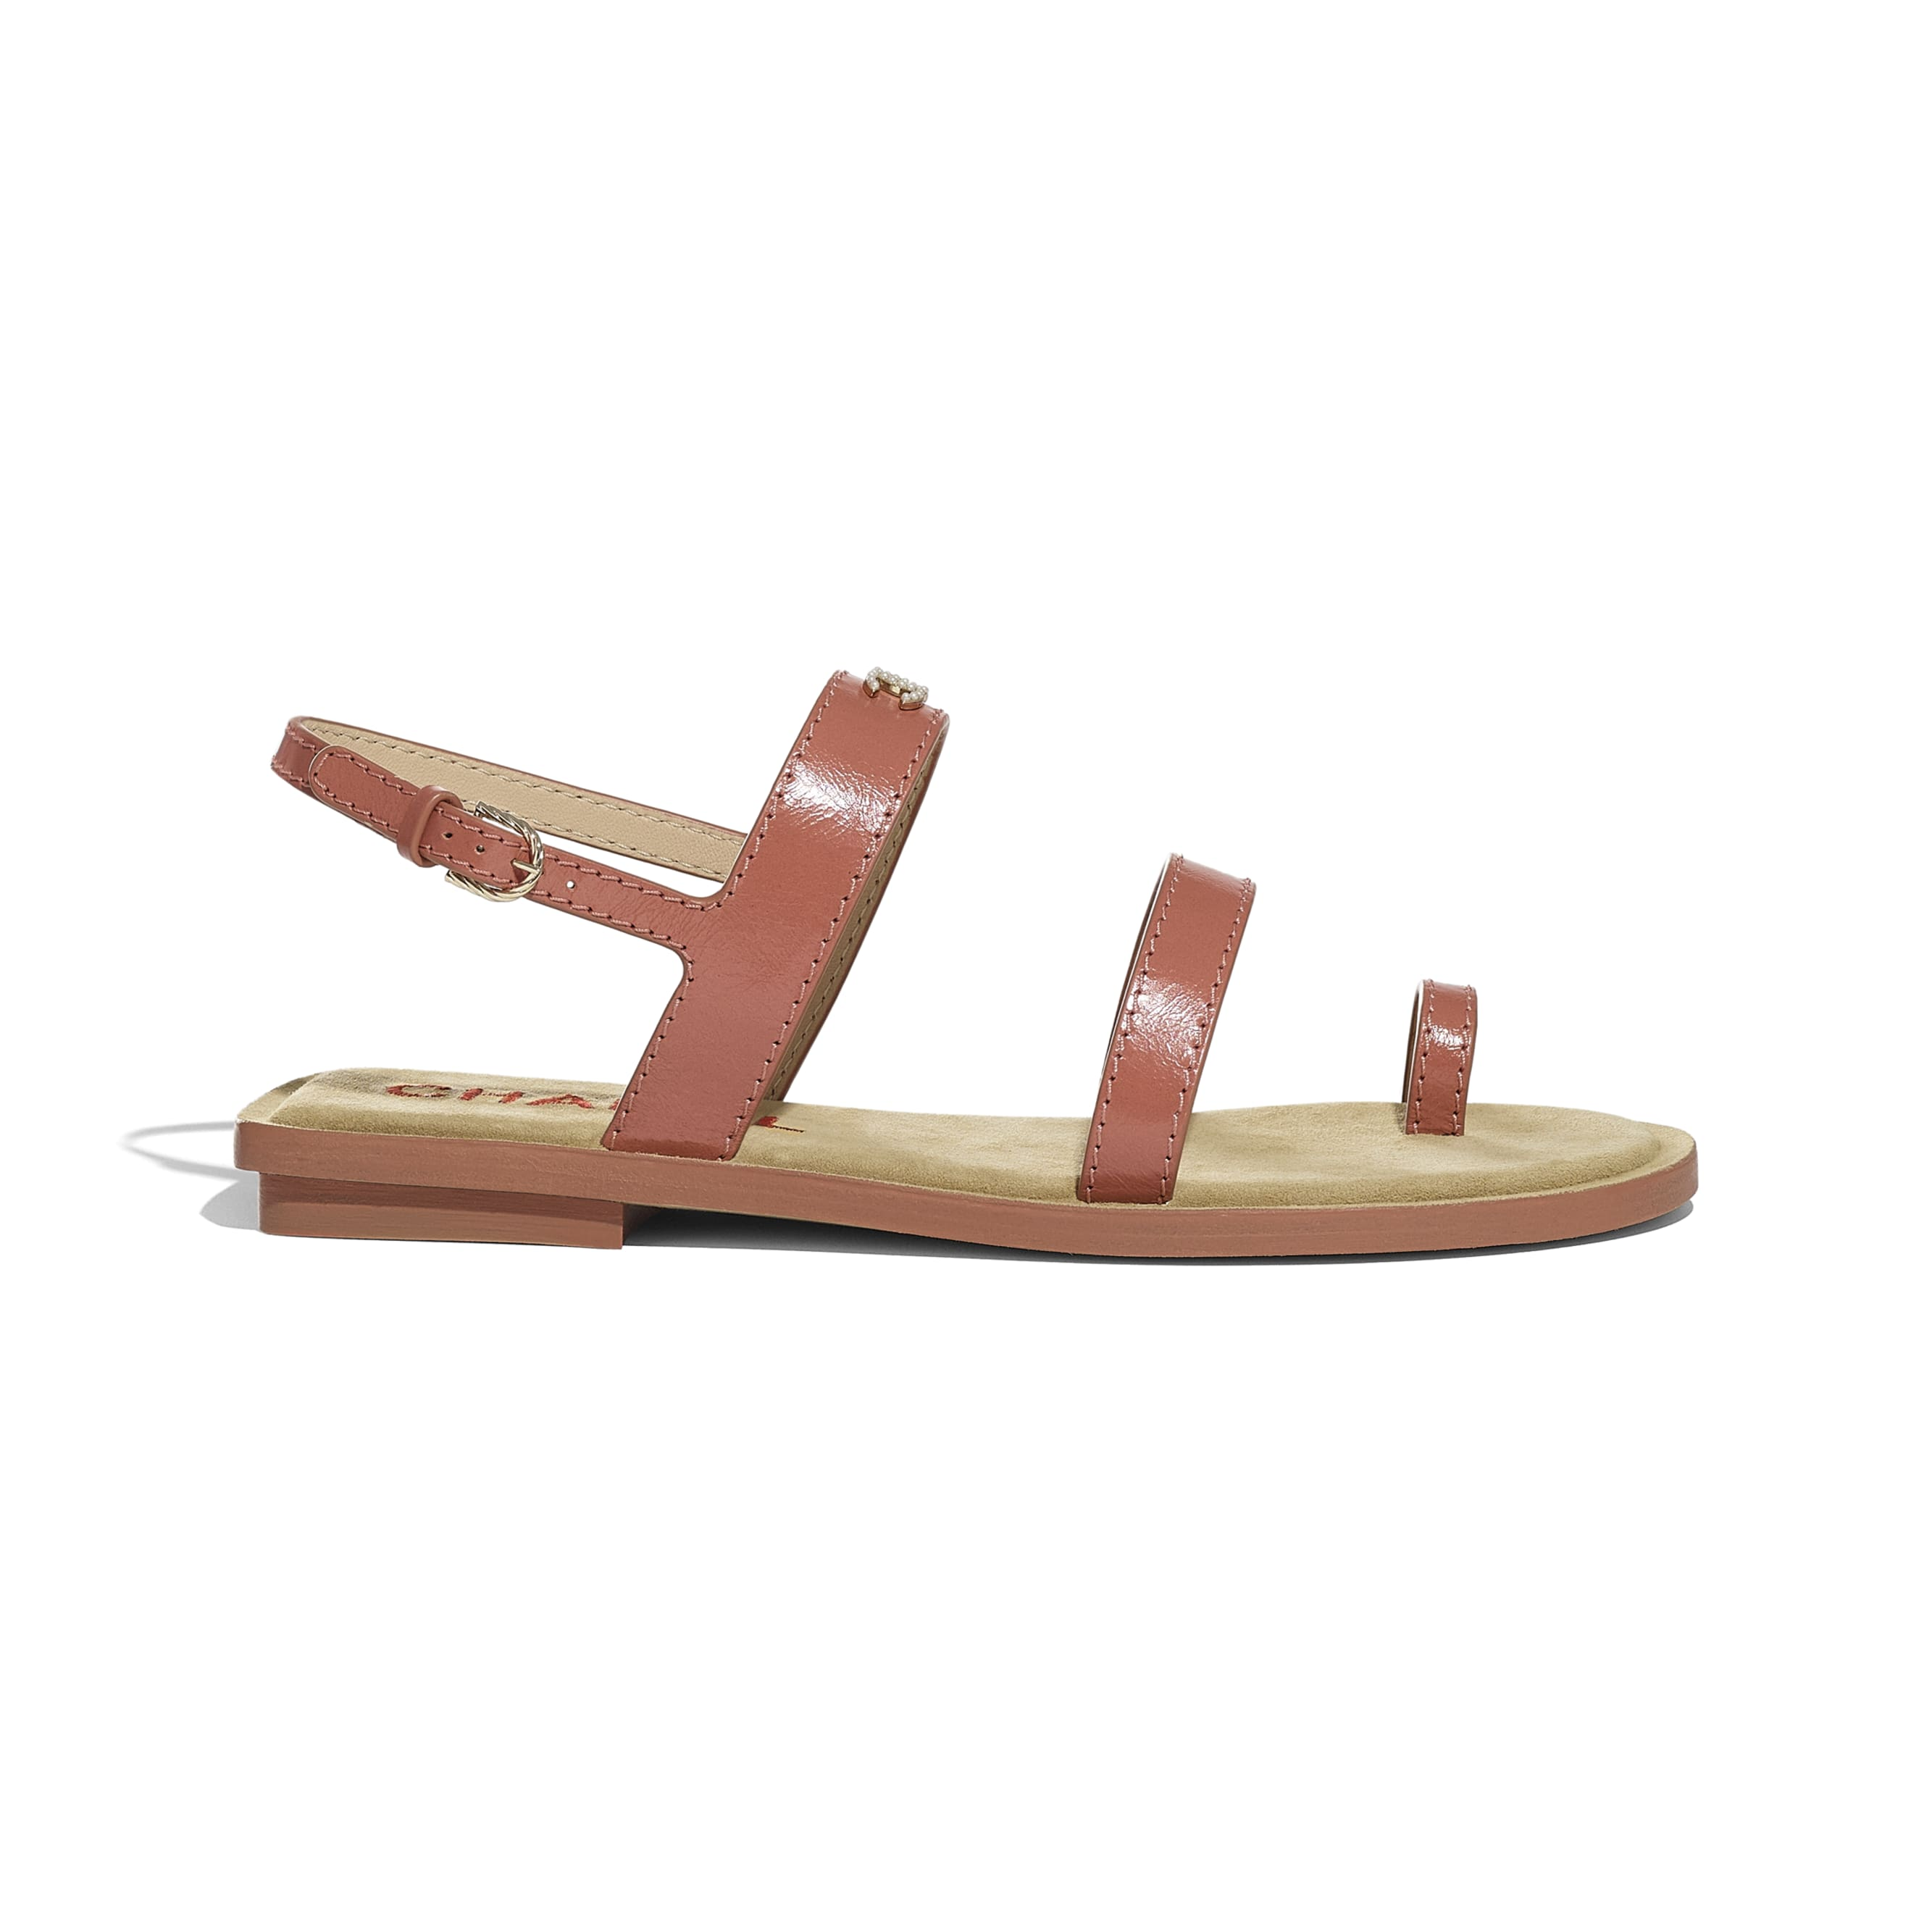 Sandals - Dark Pink - Shiny Calfskin - CHANEL - Default view - see standard sized version